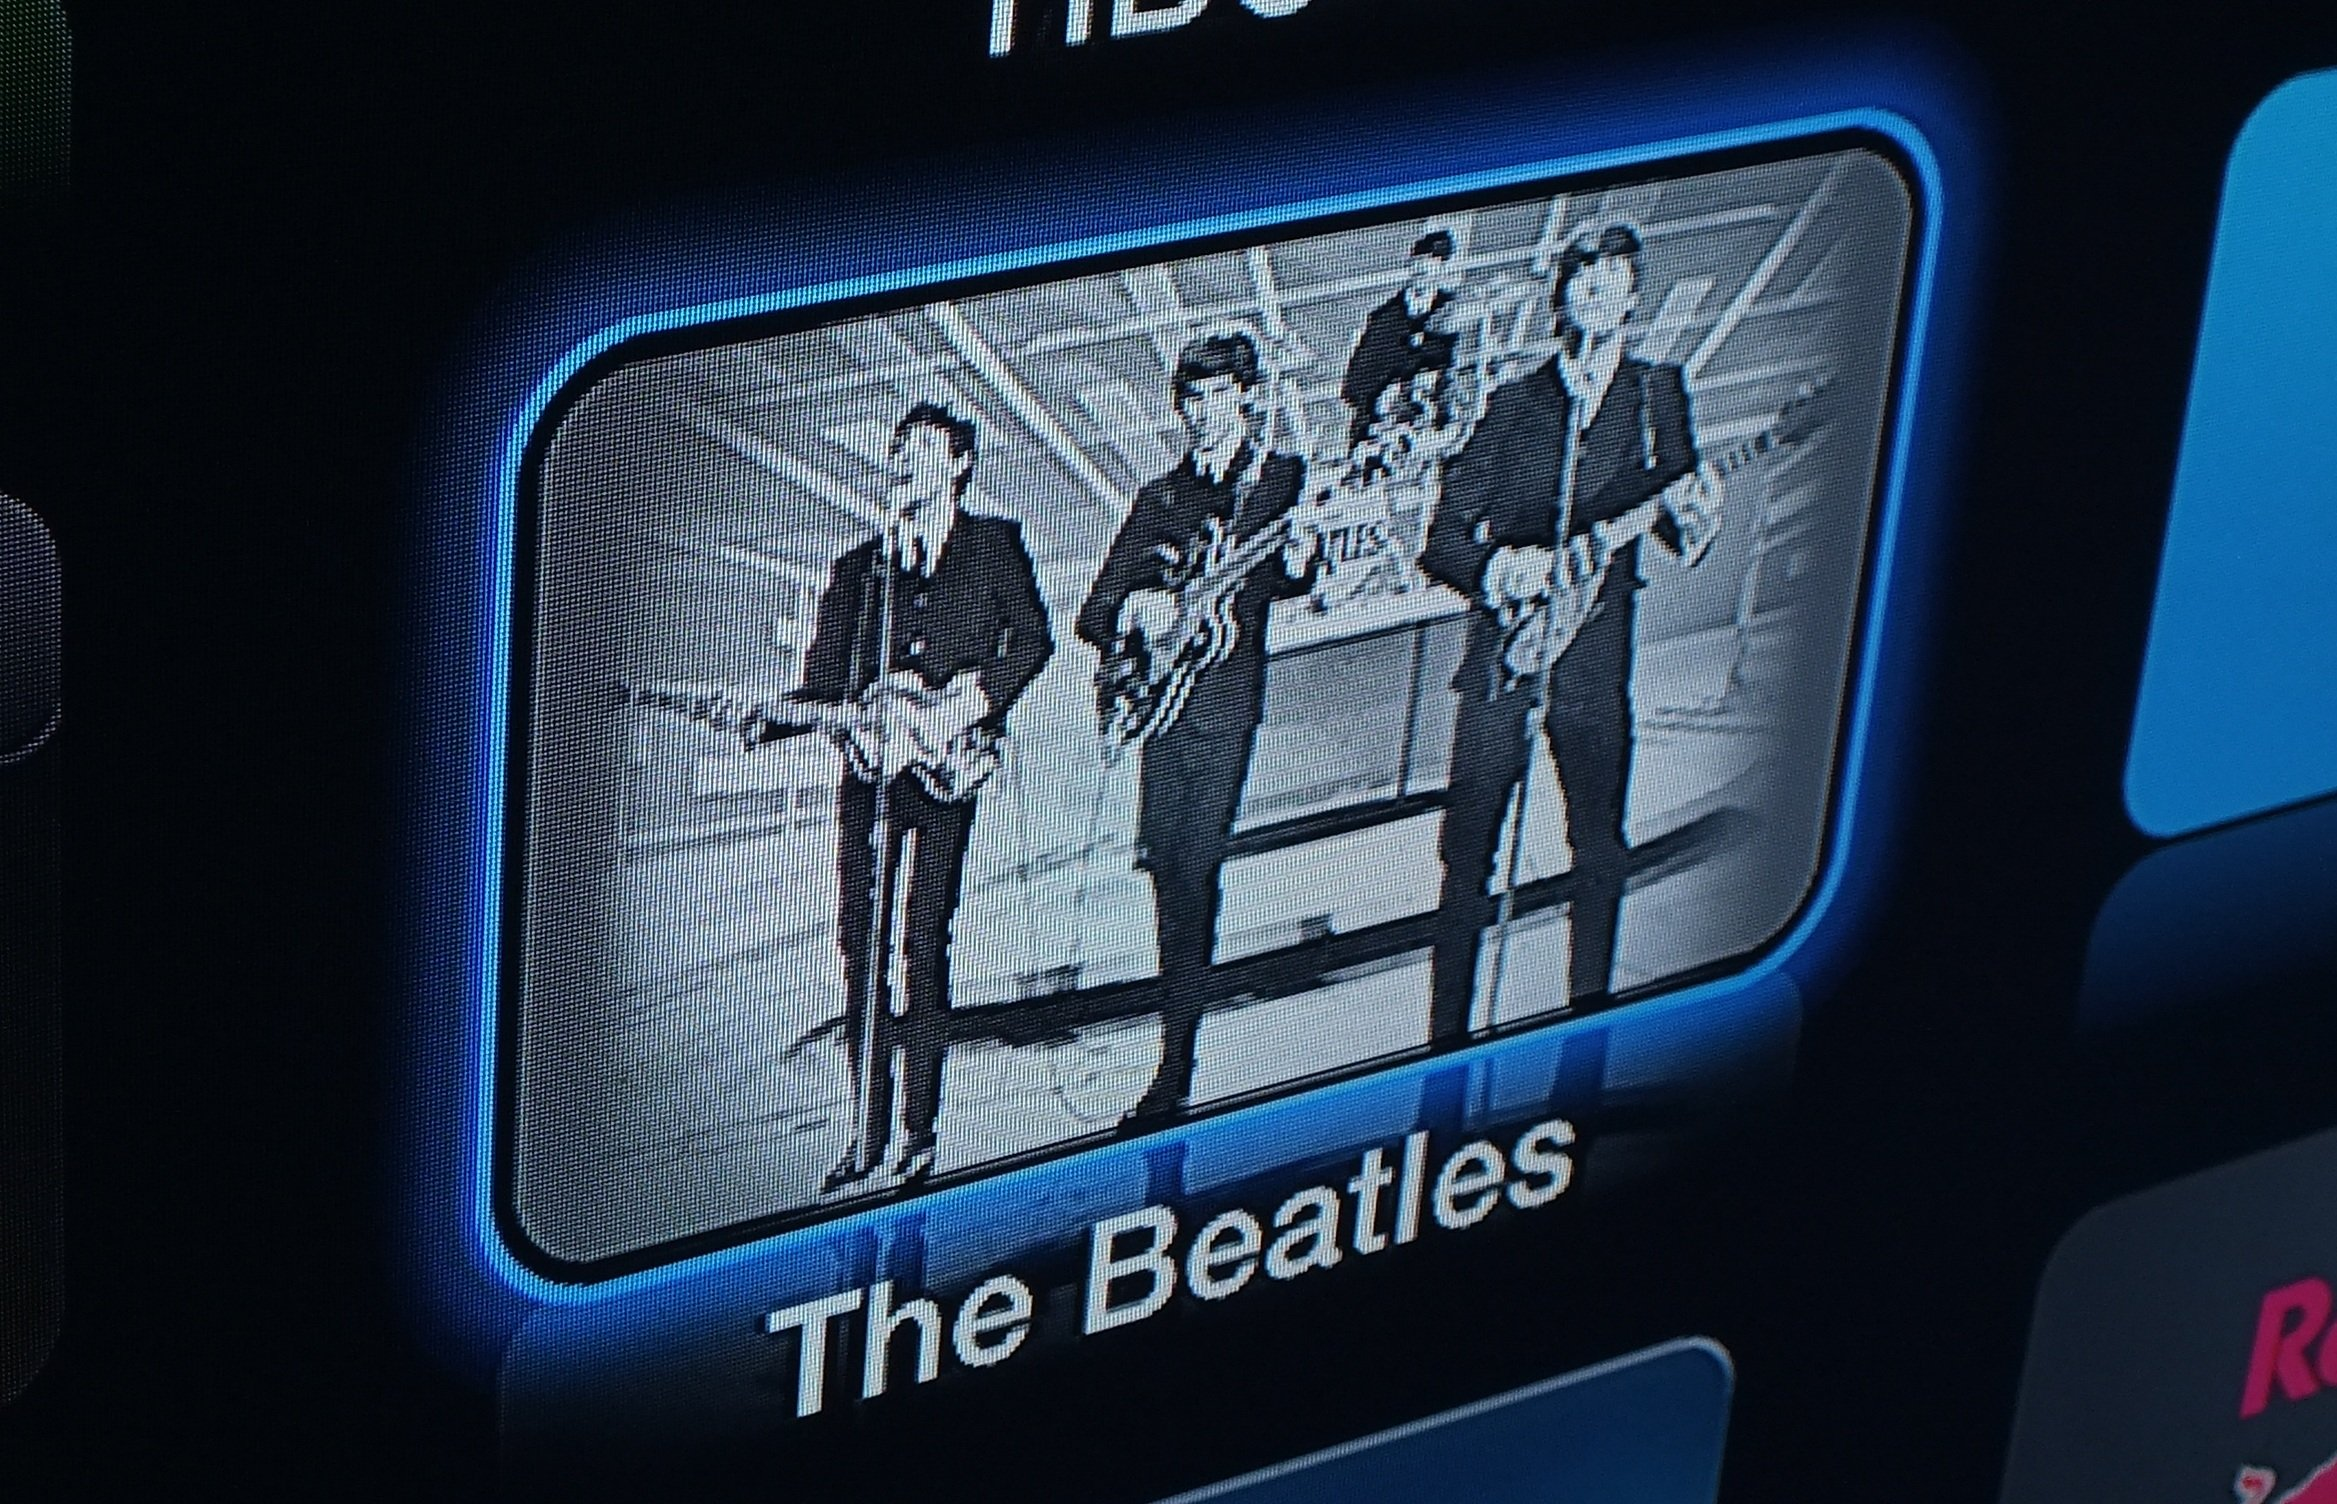 The Beatles channel on Apple TV